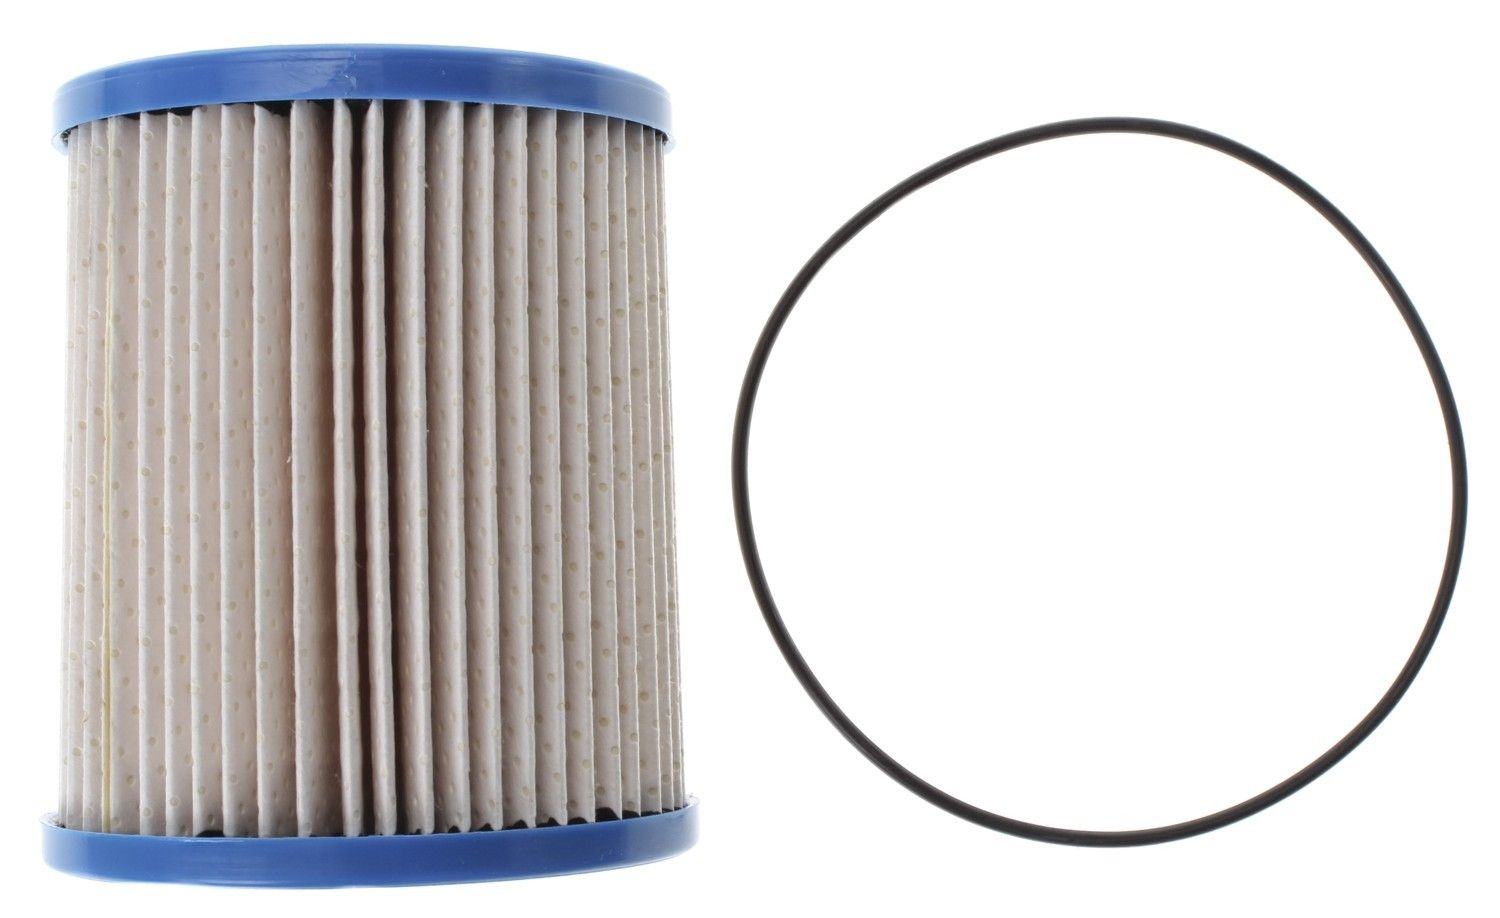 Dodge Ram 3500 Fuel Filter Replacement Fram Full Hastings Mahle 1998 Location 2003 6 Cyl 59l Kx 357 Type Cartridge